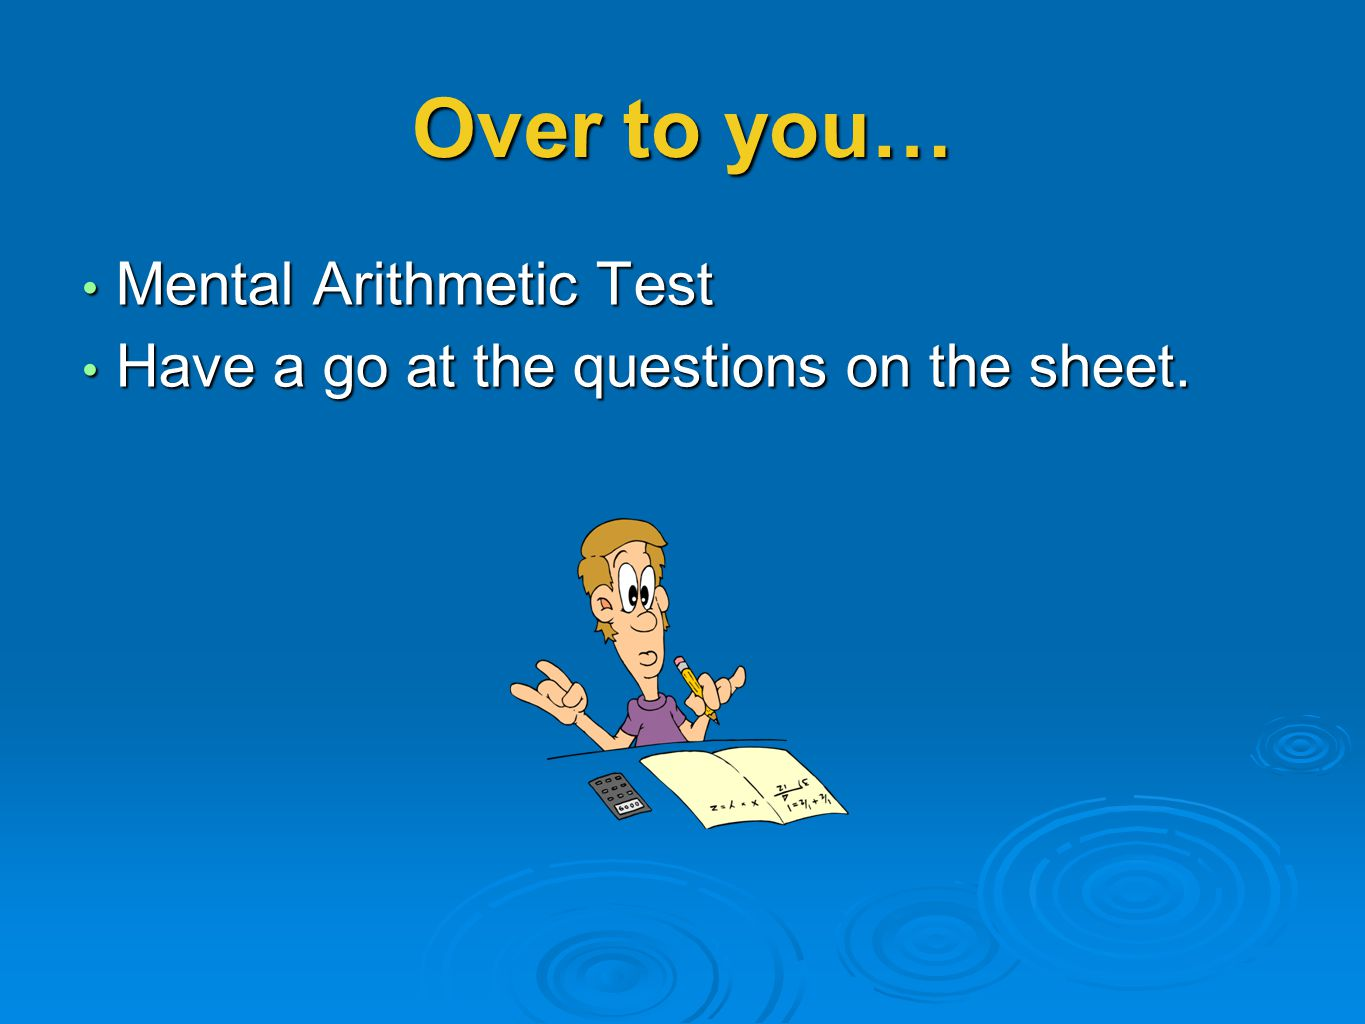 Over to you… Mental Arithmetic Test Mental Arithmetic Test Have a go at the questions on the sheet. Have a go at the questions on the sheet.